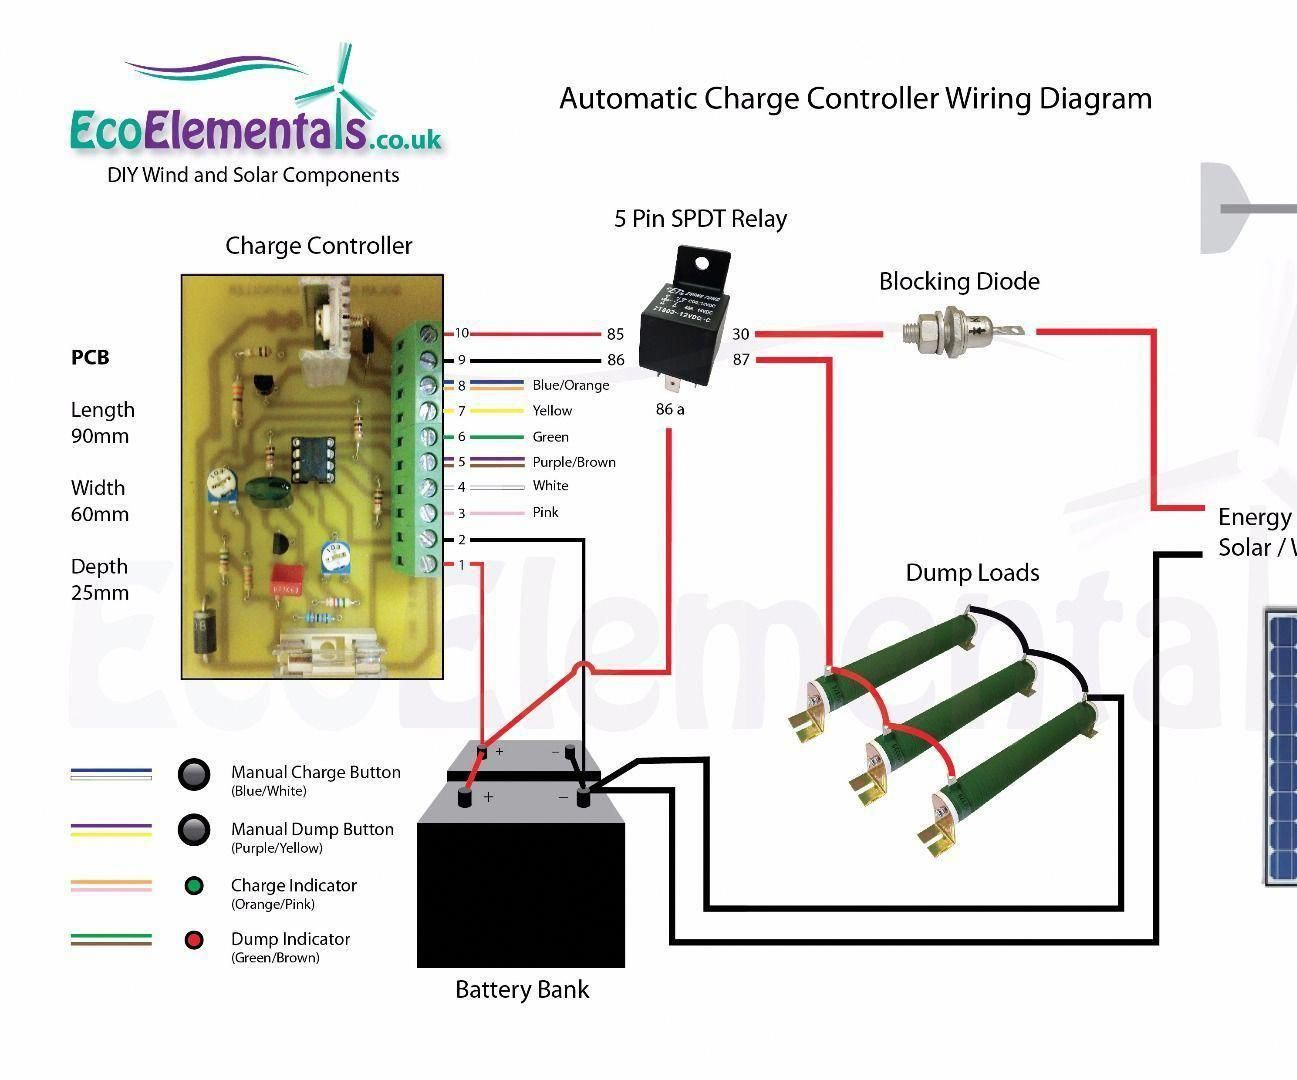 Charge Controller Wiring Diagram For Diy Wind Turbine Or Solar Panels Solar Power Facts Solar Energy Panels Diy Wind Turbine